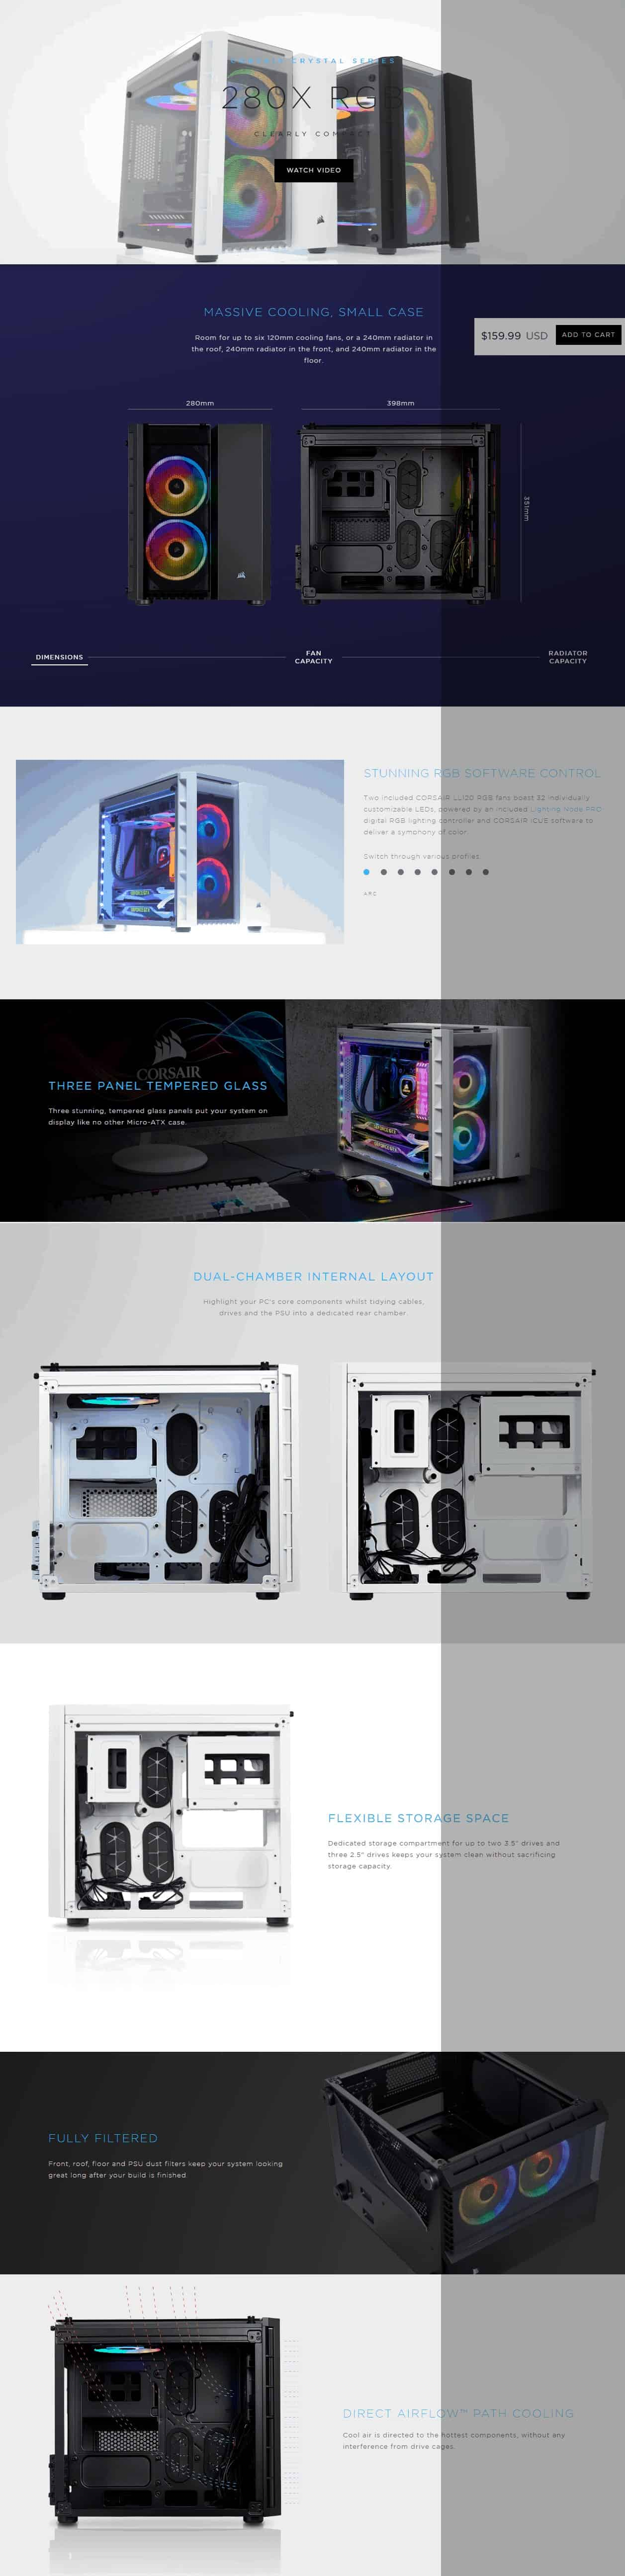 CORSAIR CABINET CRYSTAL 280X RGB BLACK, WHITE Micro-ATX Case, 2 RGB Fans, Lighting Node PRO Included, Tempered Glass